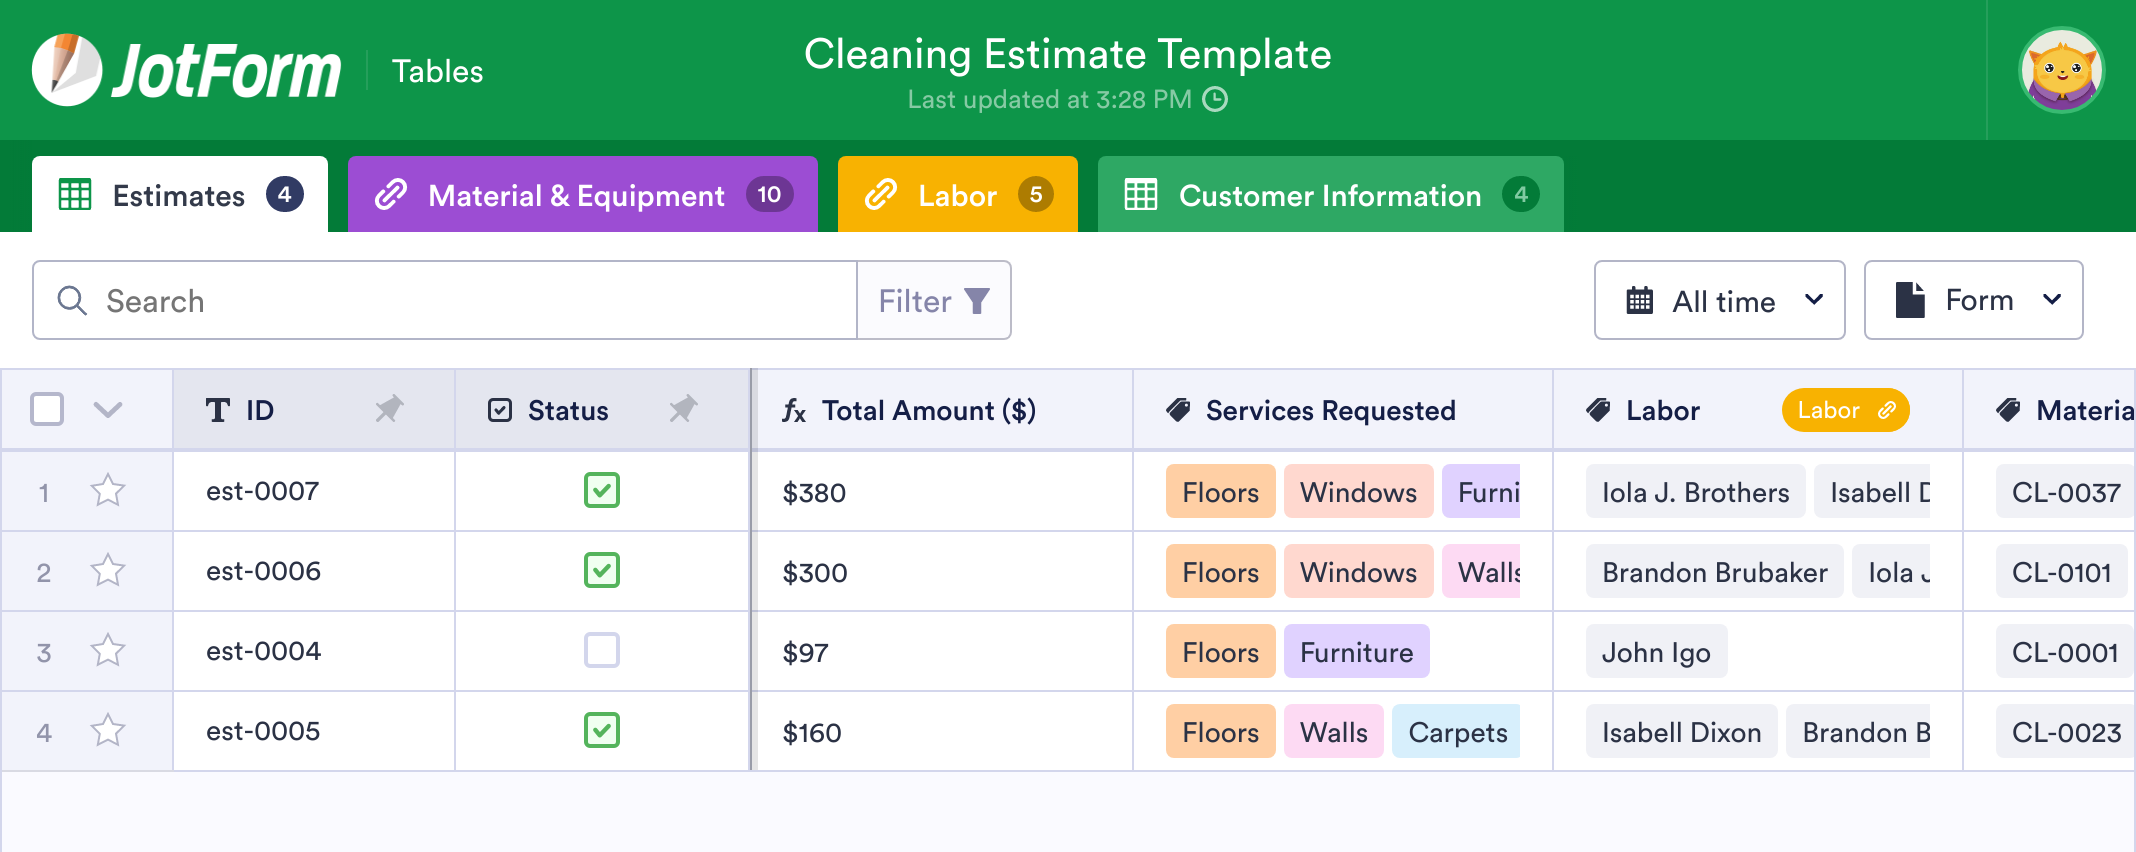 Cleaning Estimate Template